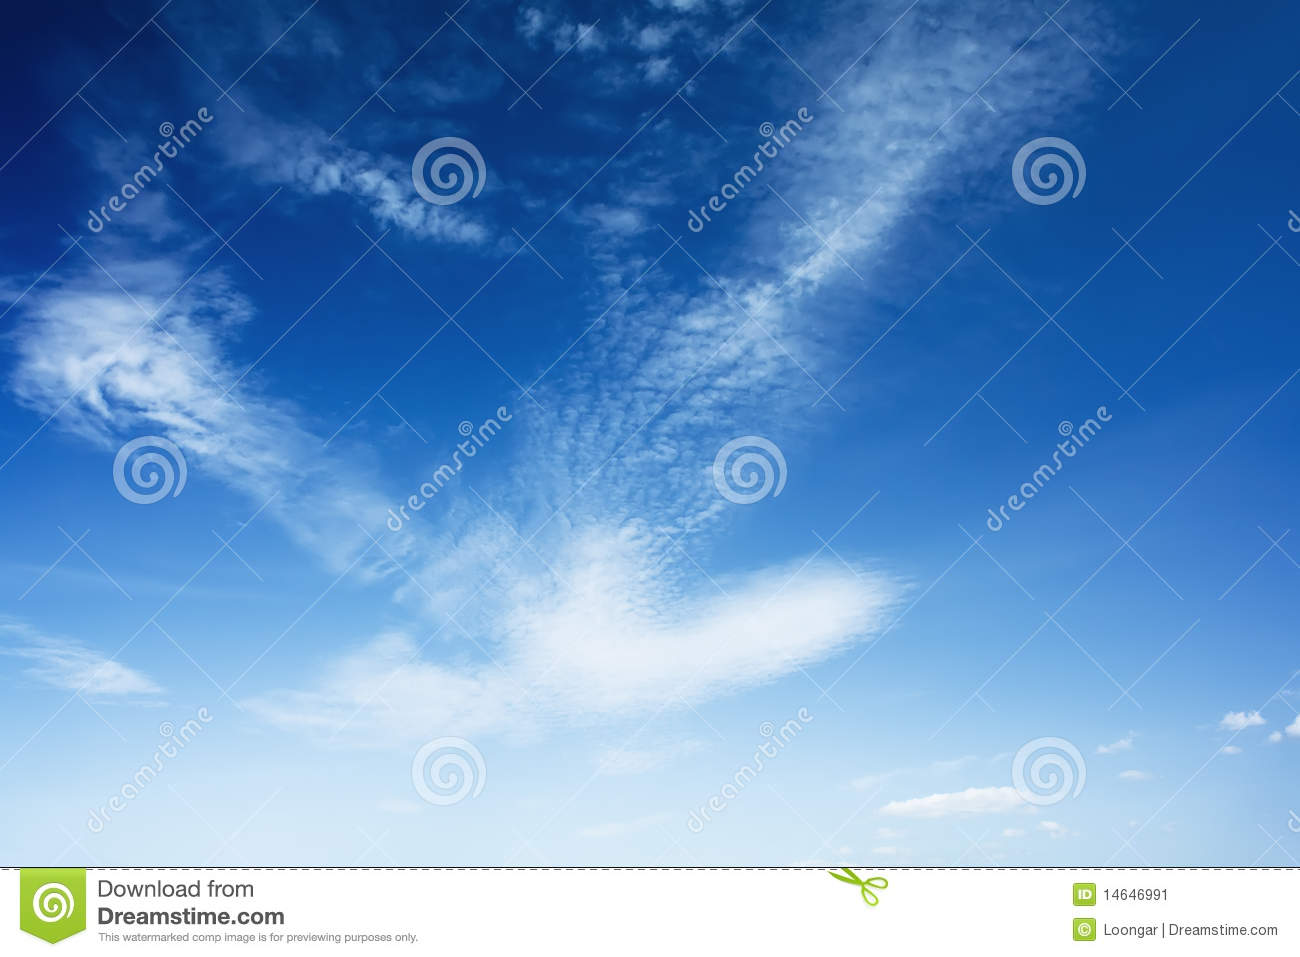 Download image Bright Blue Sky With Clouds PC, Android, iPhone and ...